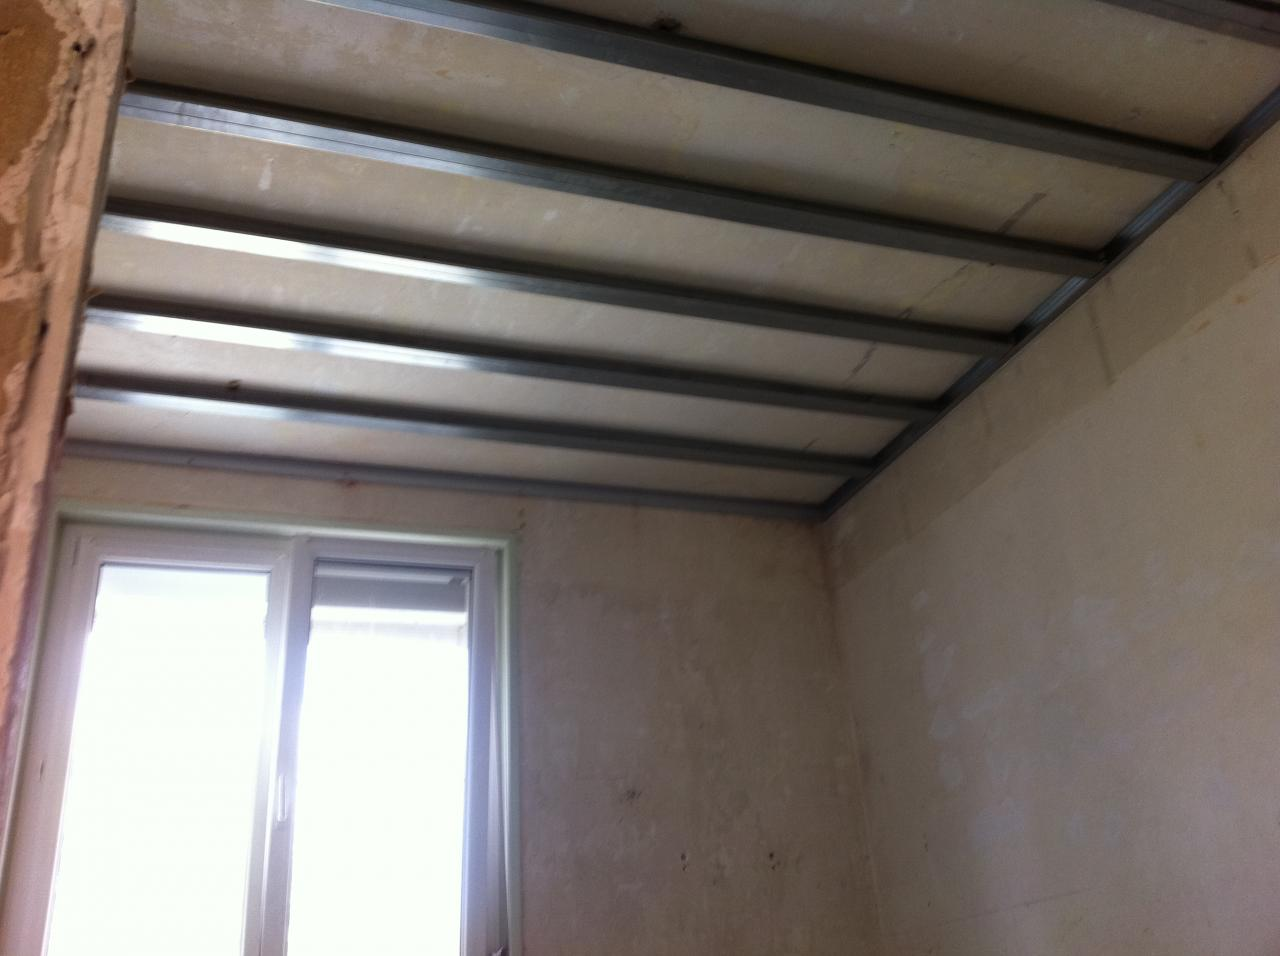 Types de rails et montants pour plafond autoporteur placo for Faire un plafond en ba13